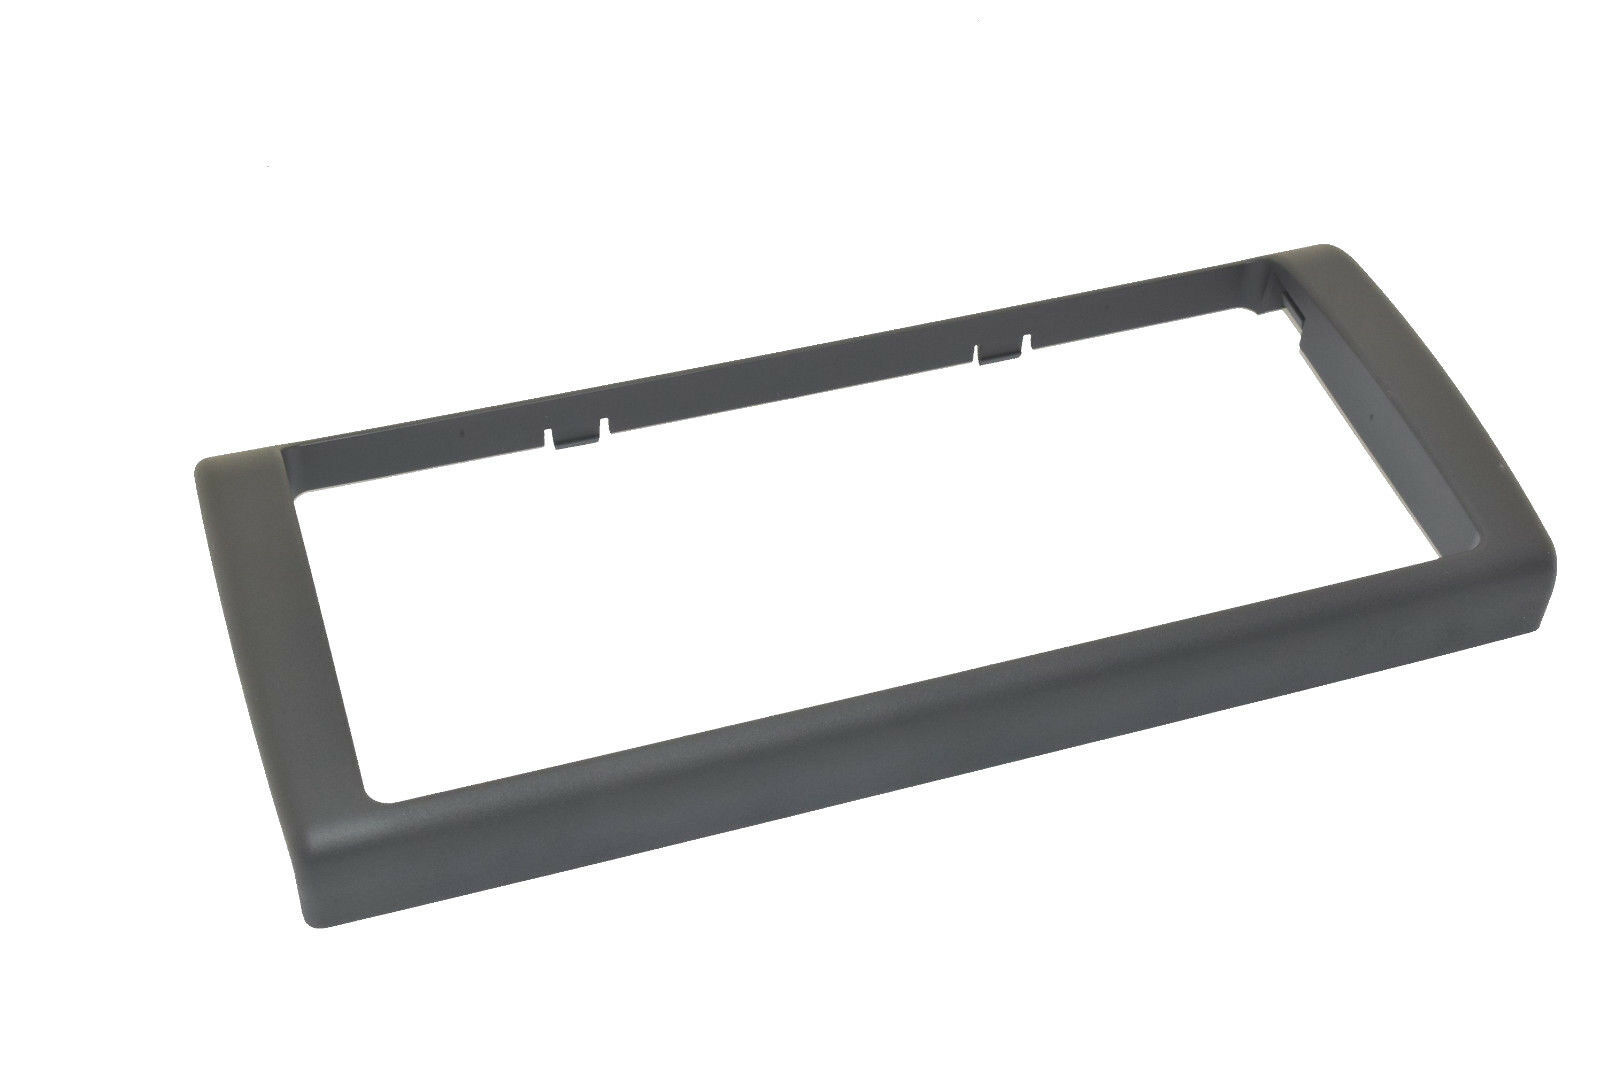 New BMW E38 728i, 730d, 735iL, 740i On-board monitor 16:9 Frame 65528385450 - $67.31